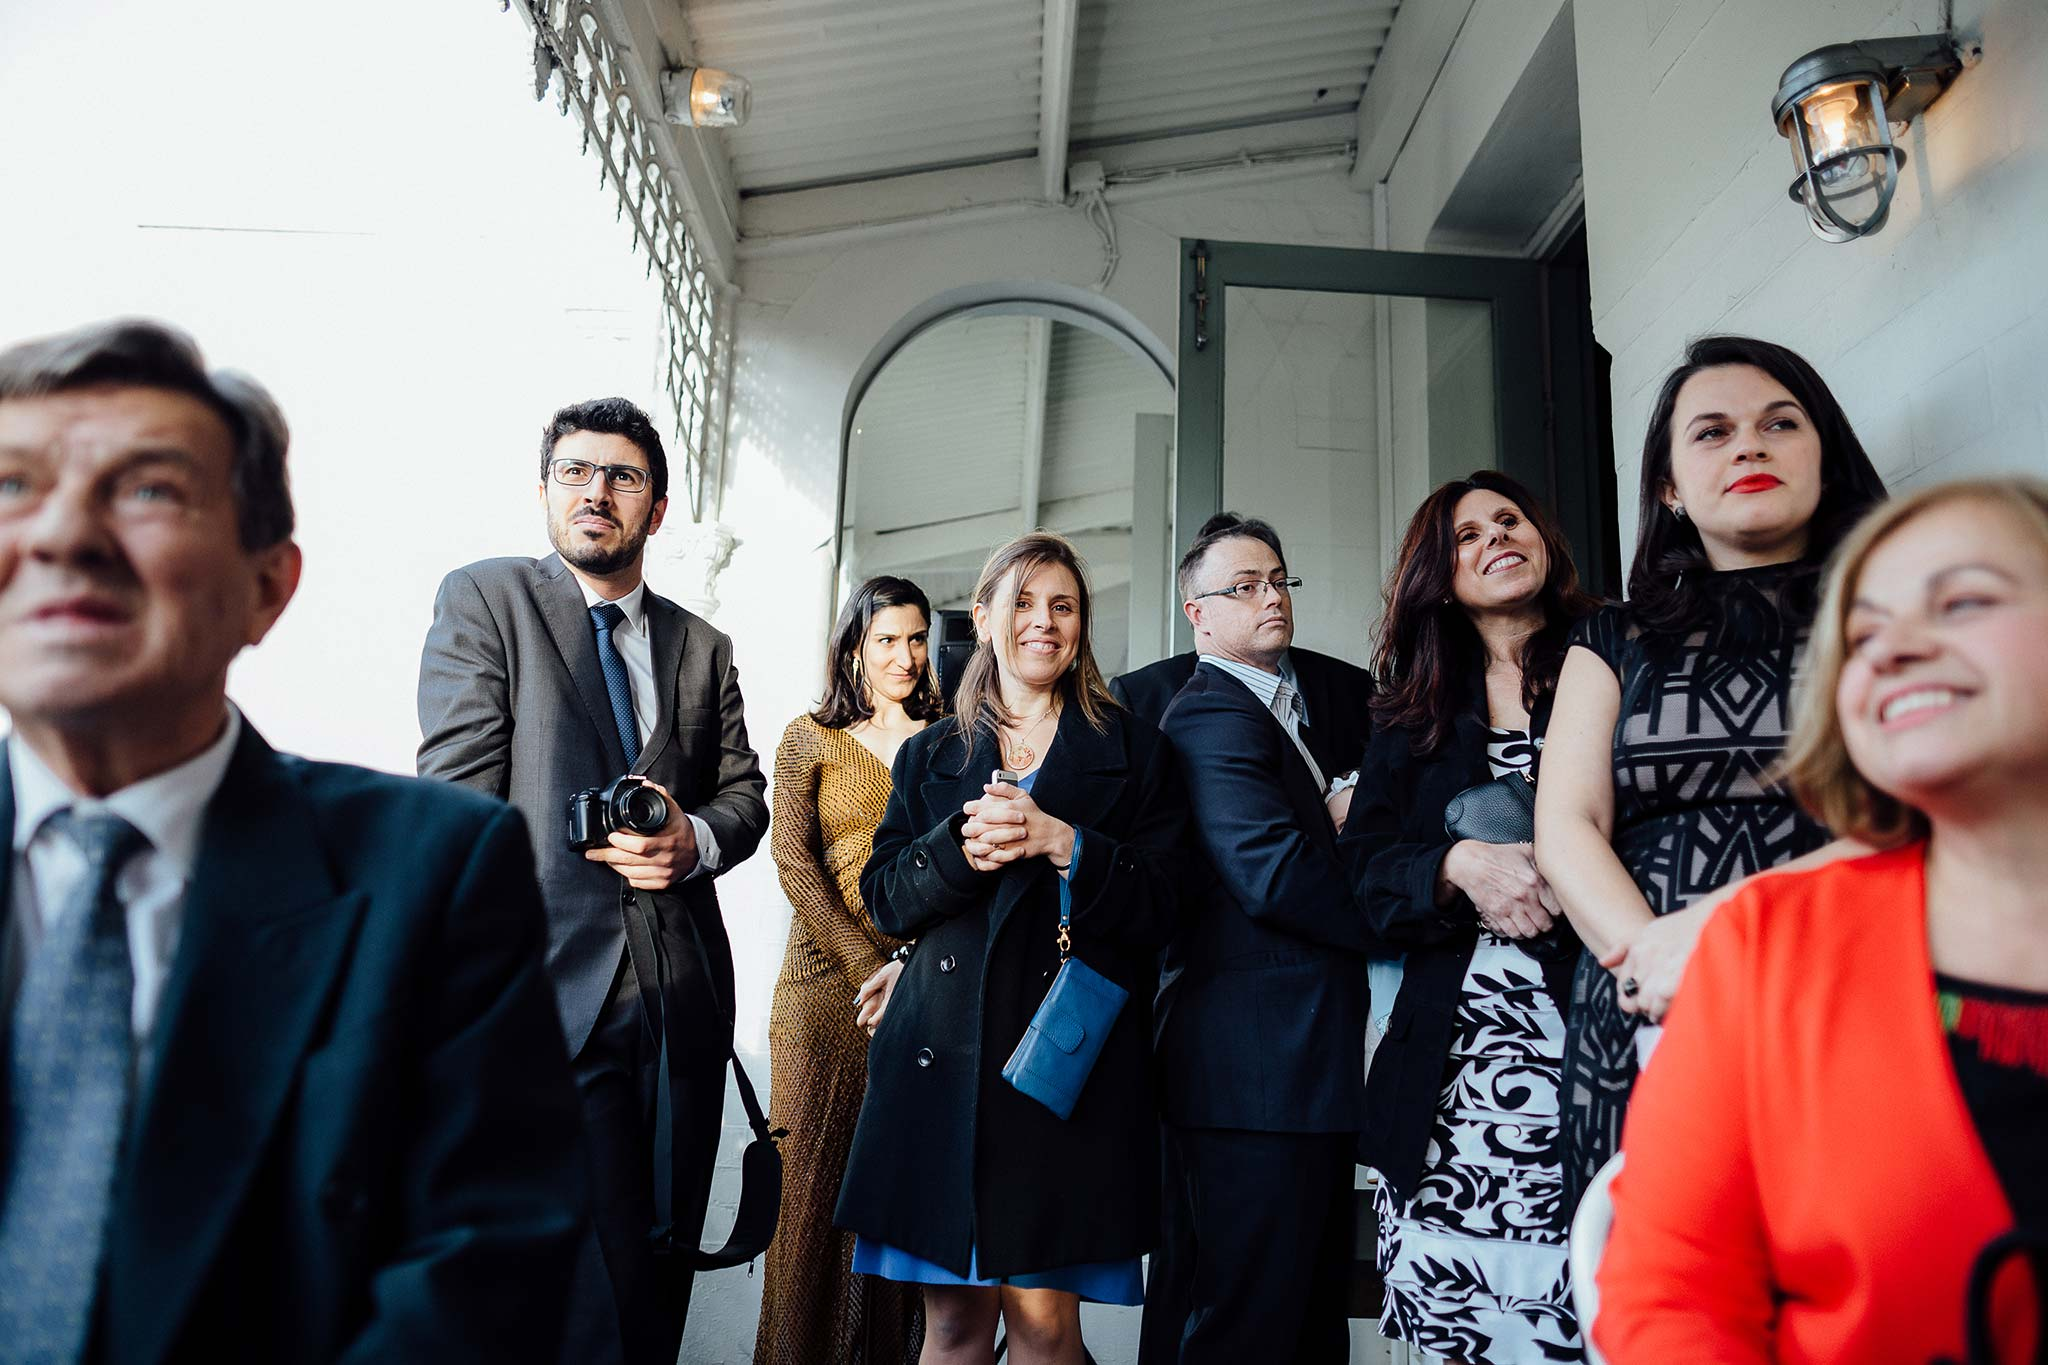 melbourne-entrecote-wedding-ceremony-balcony-guests